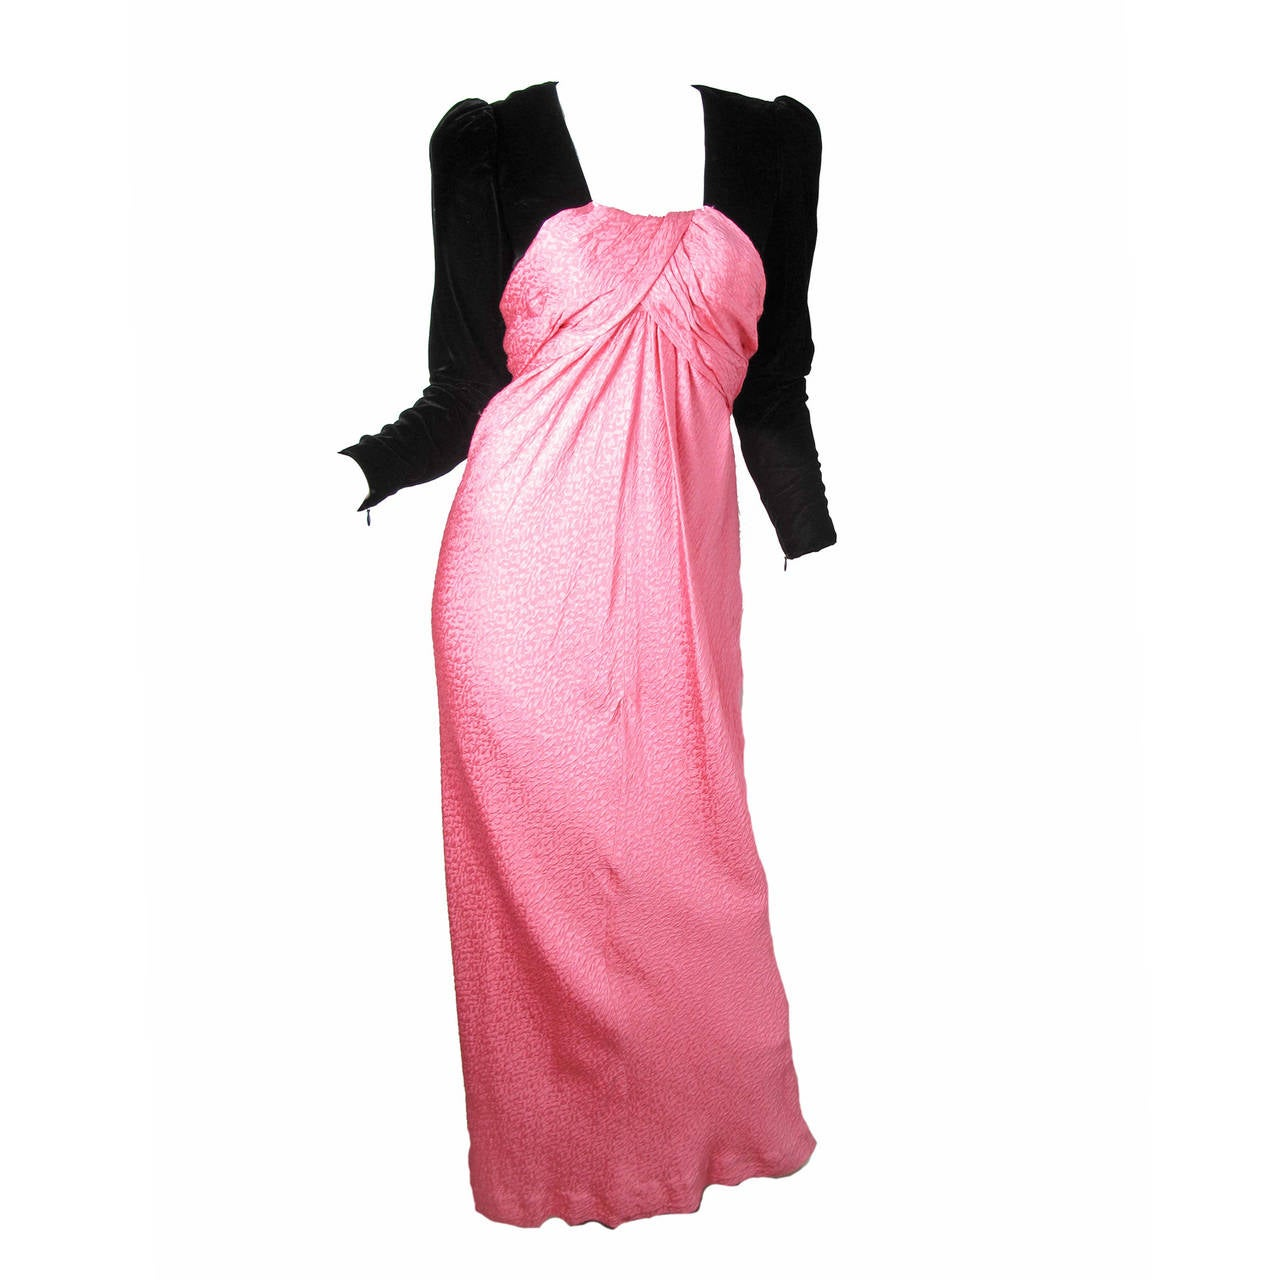 Oscar de la Renta Pink Gown with Black Velvet